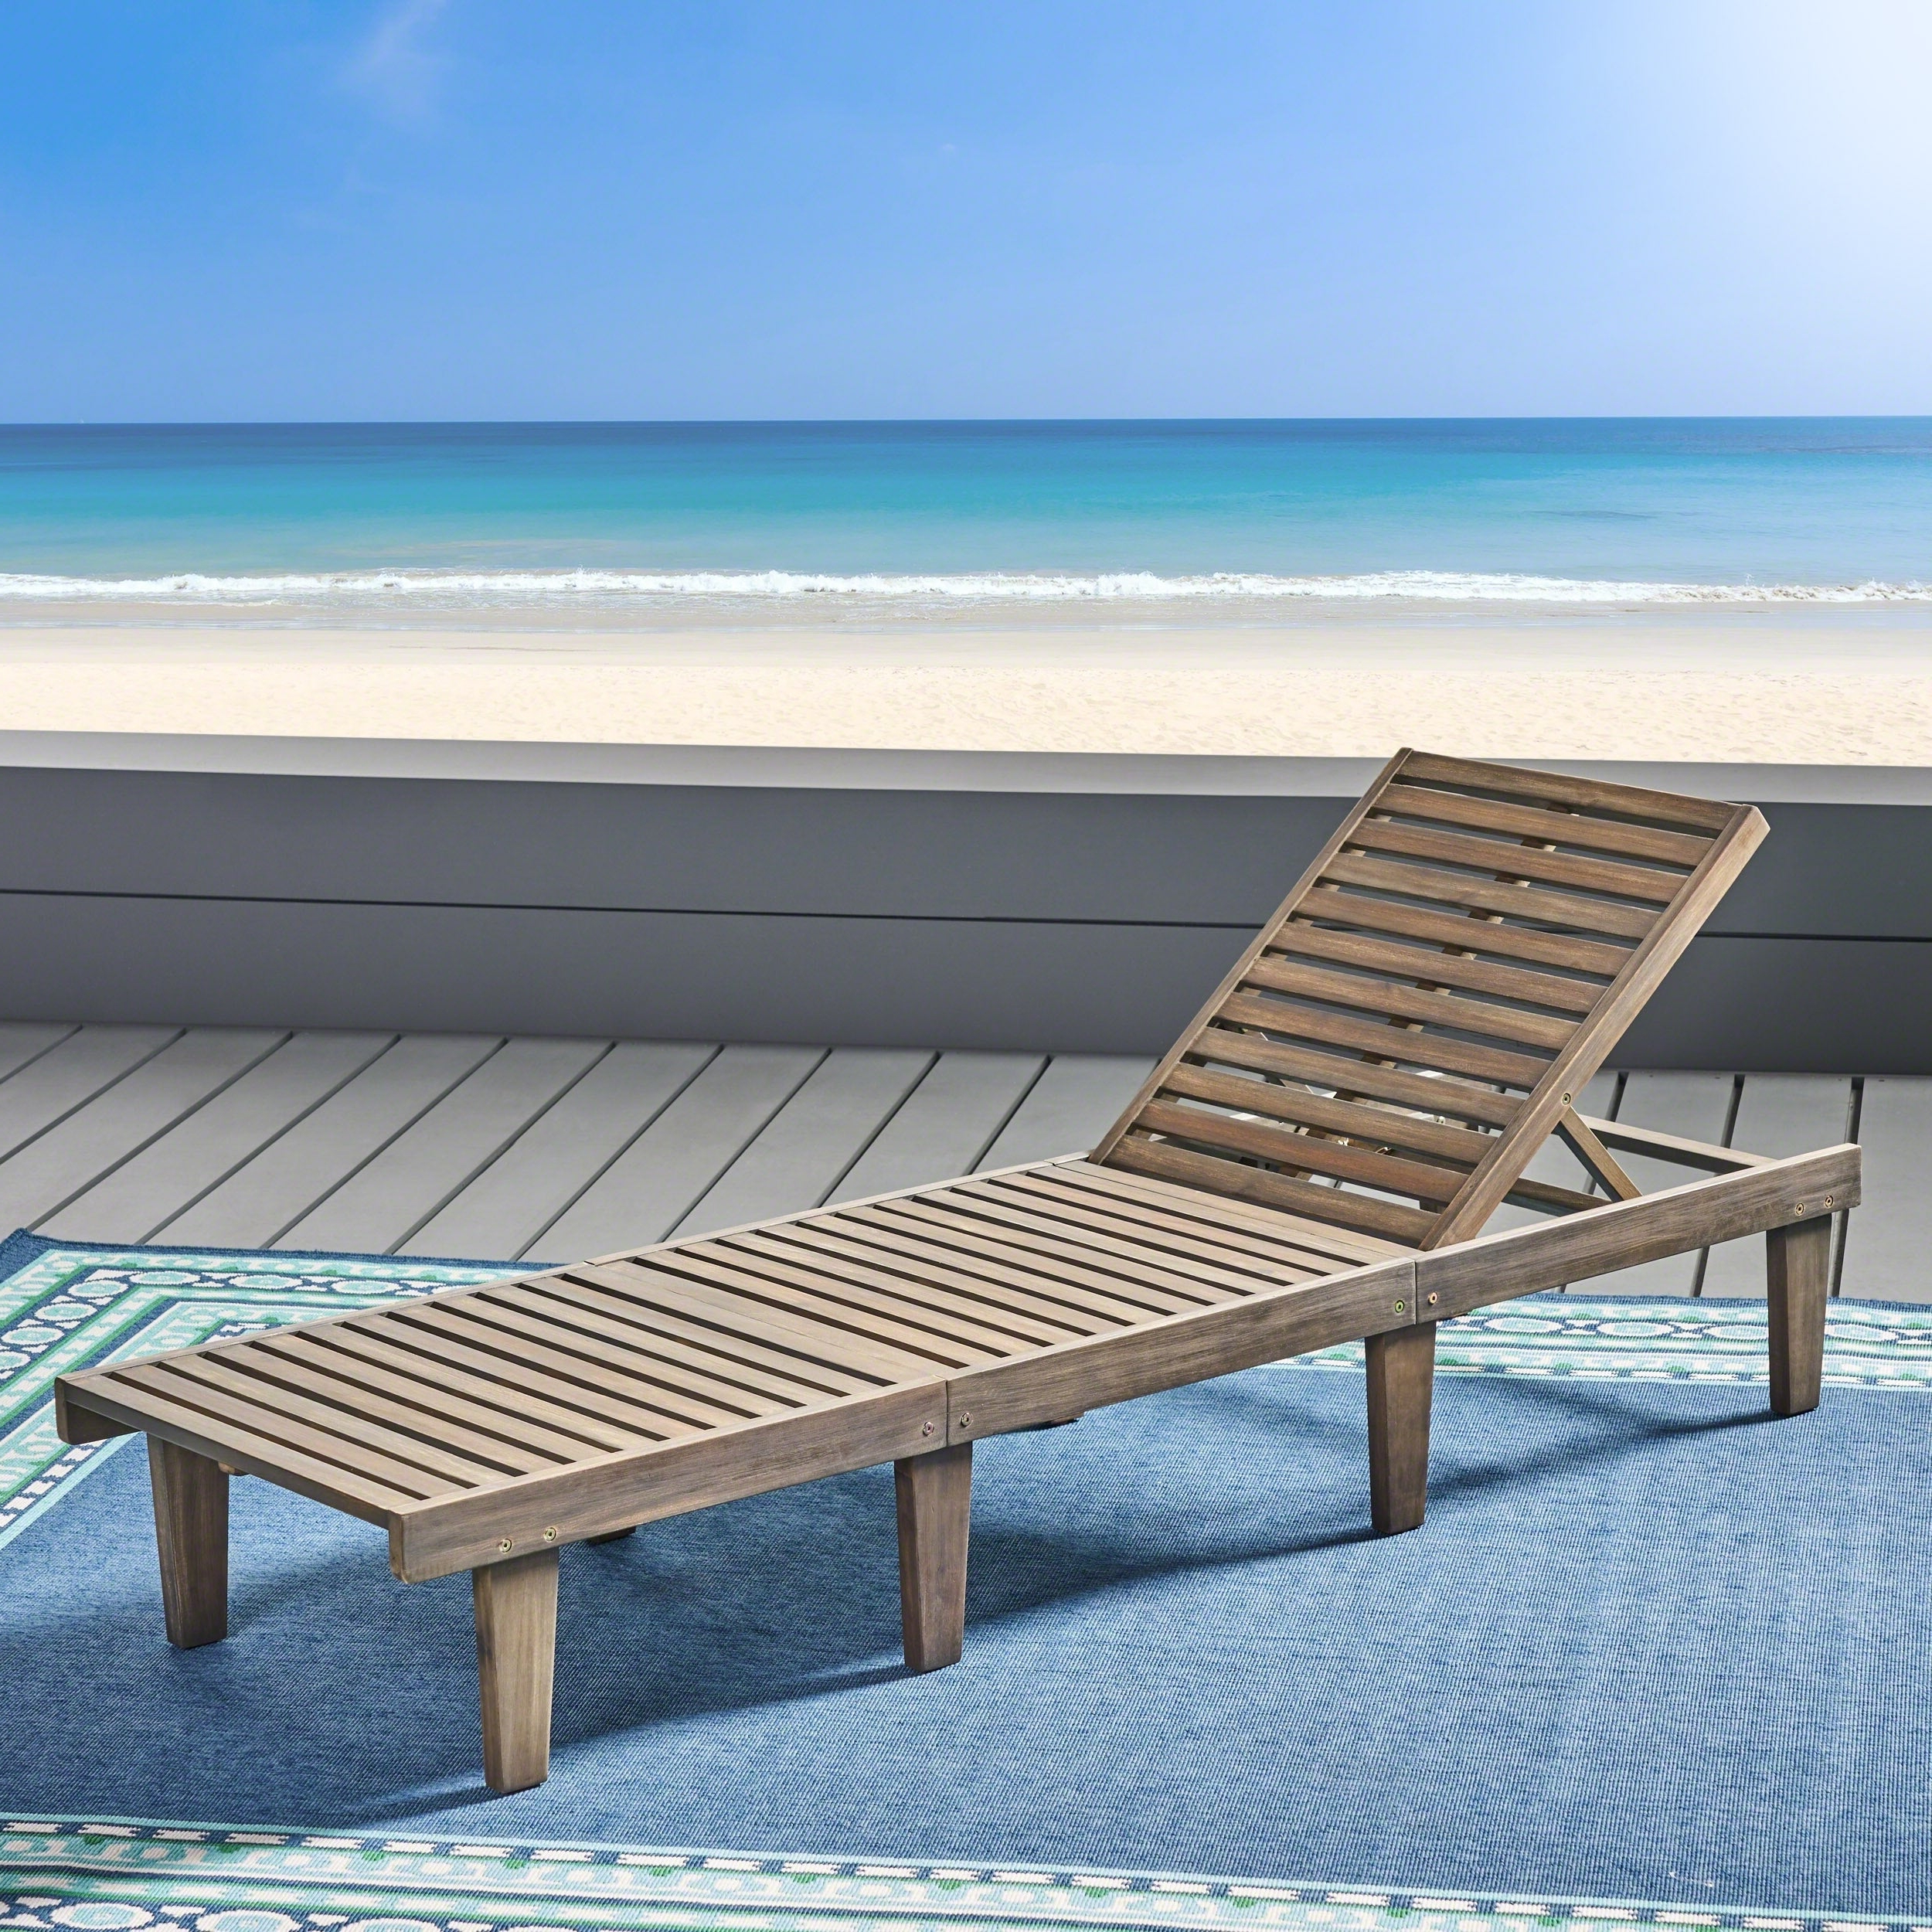 Details About Ariana Acacia Outdoor Wood Chaise Lounge With Cushion By Intended For Fashionable Maki Outdoor Wood Chaise Lounges (View 15 of 25)